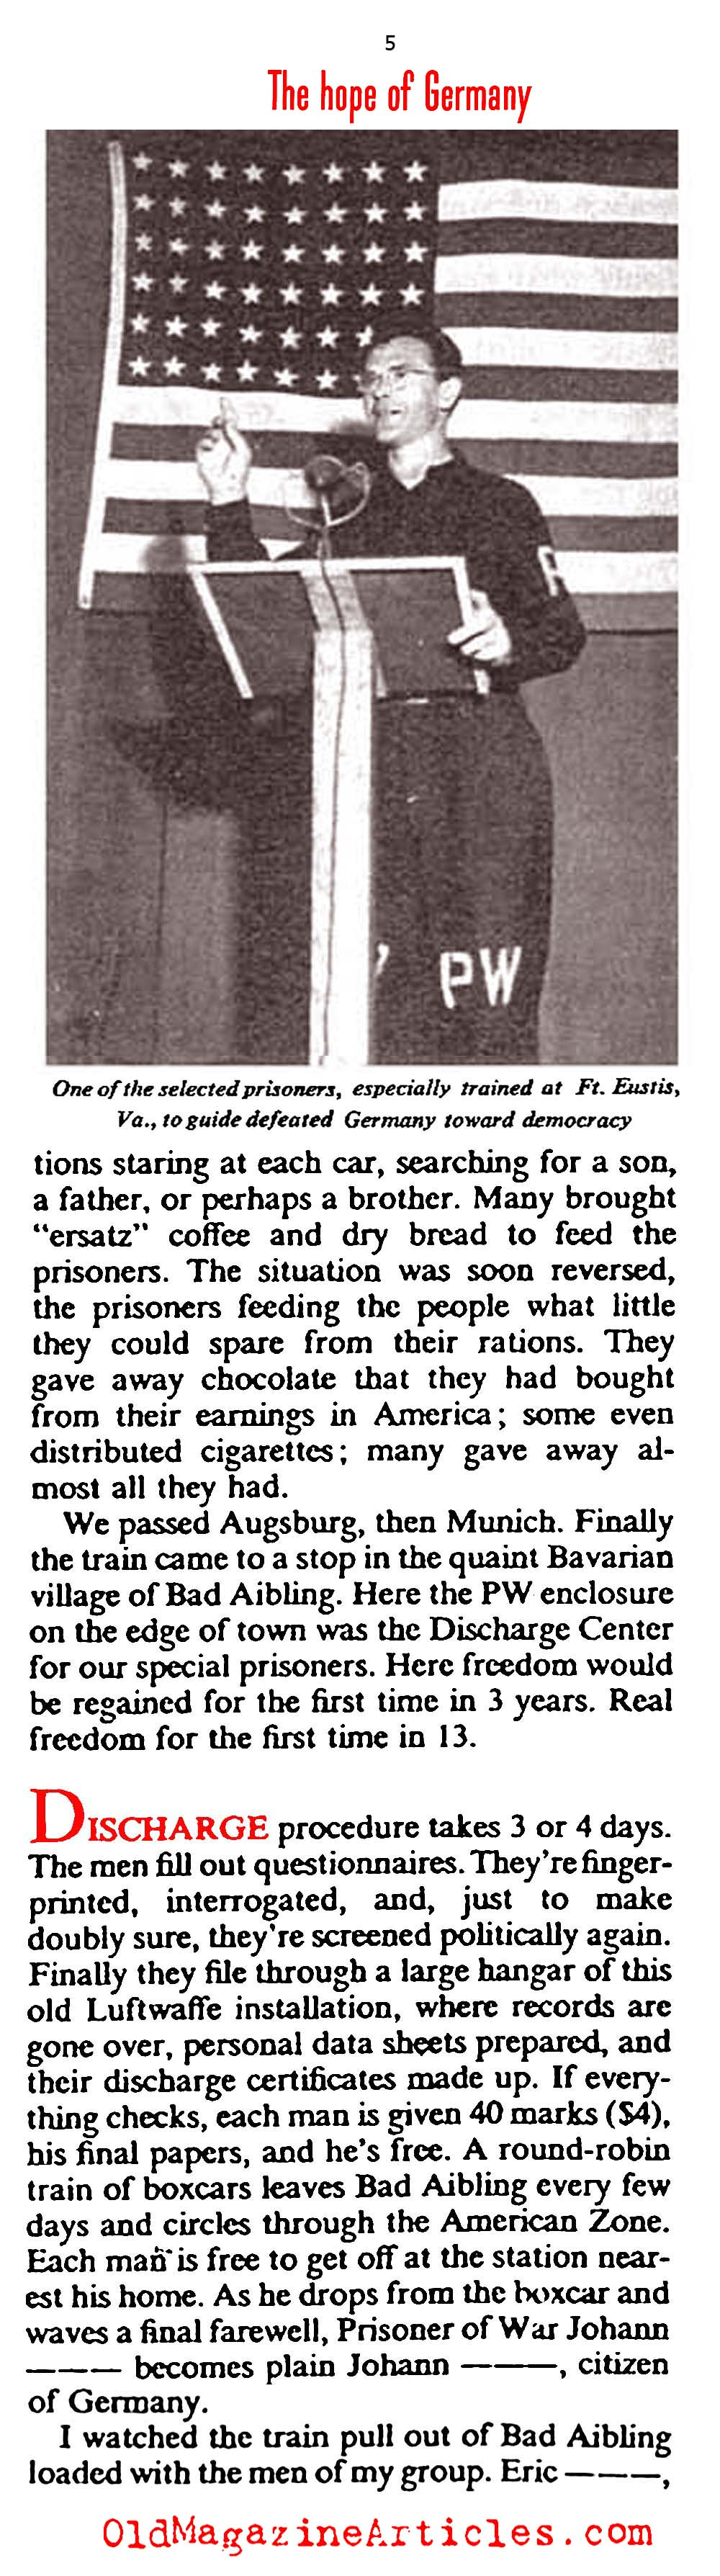 The Re-Education of German Prisoners of War (The American Magazine, 1946)